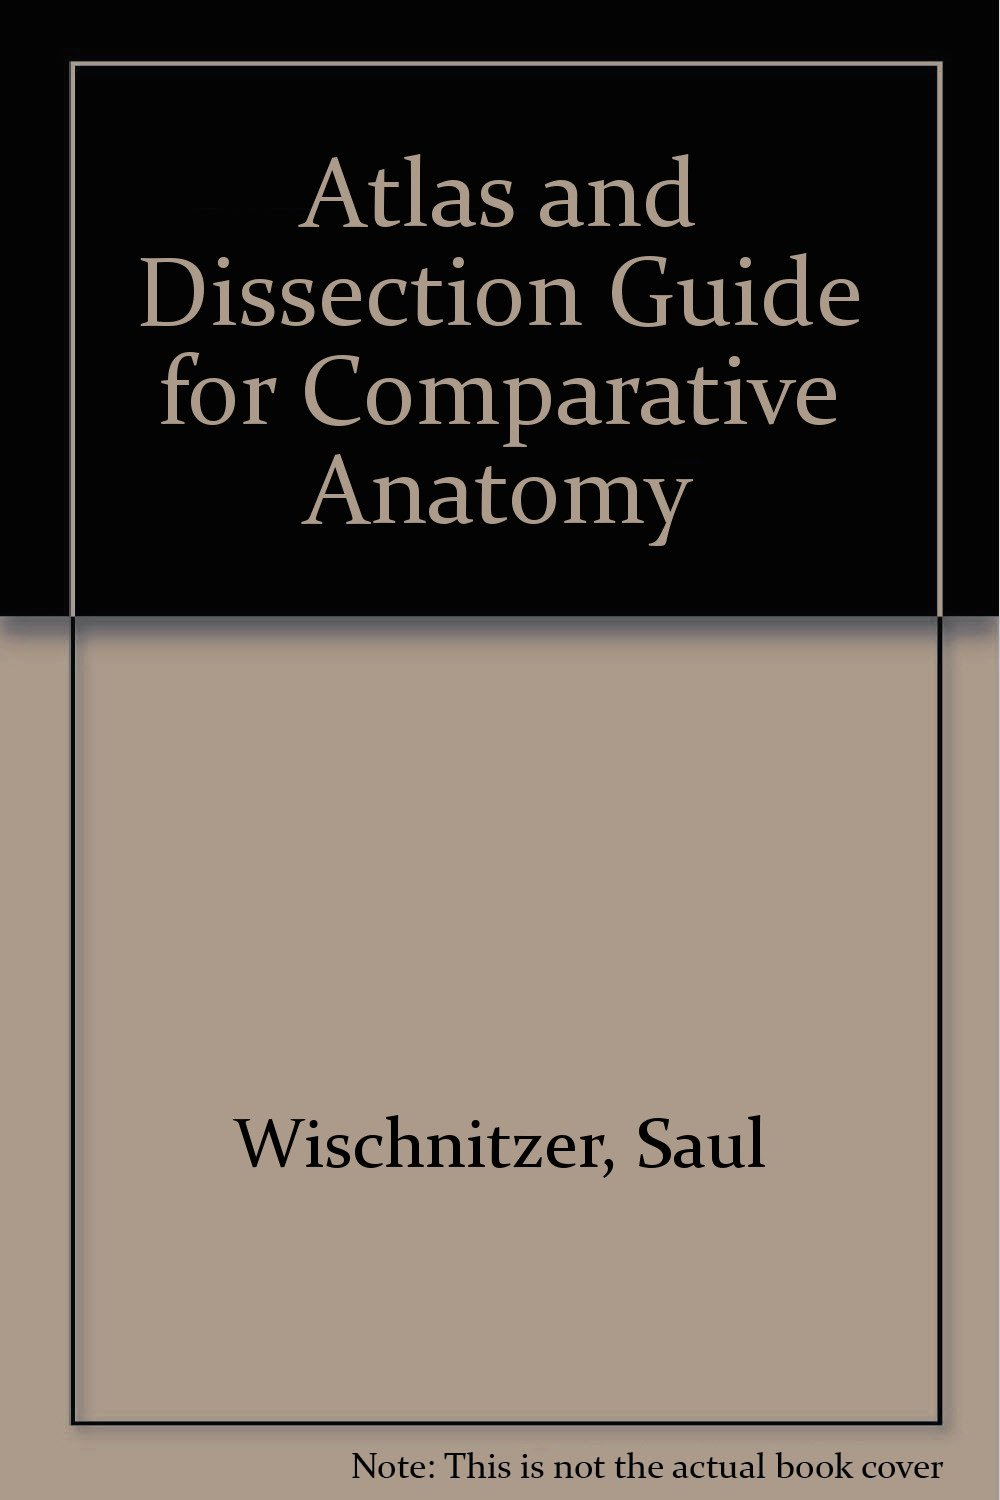 Atlas and Dissection Guide for Comparative Anatomy: Amazon.co.uk ...